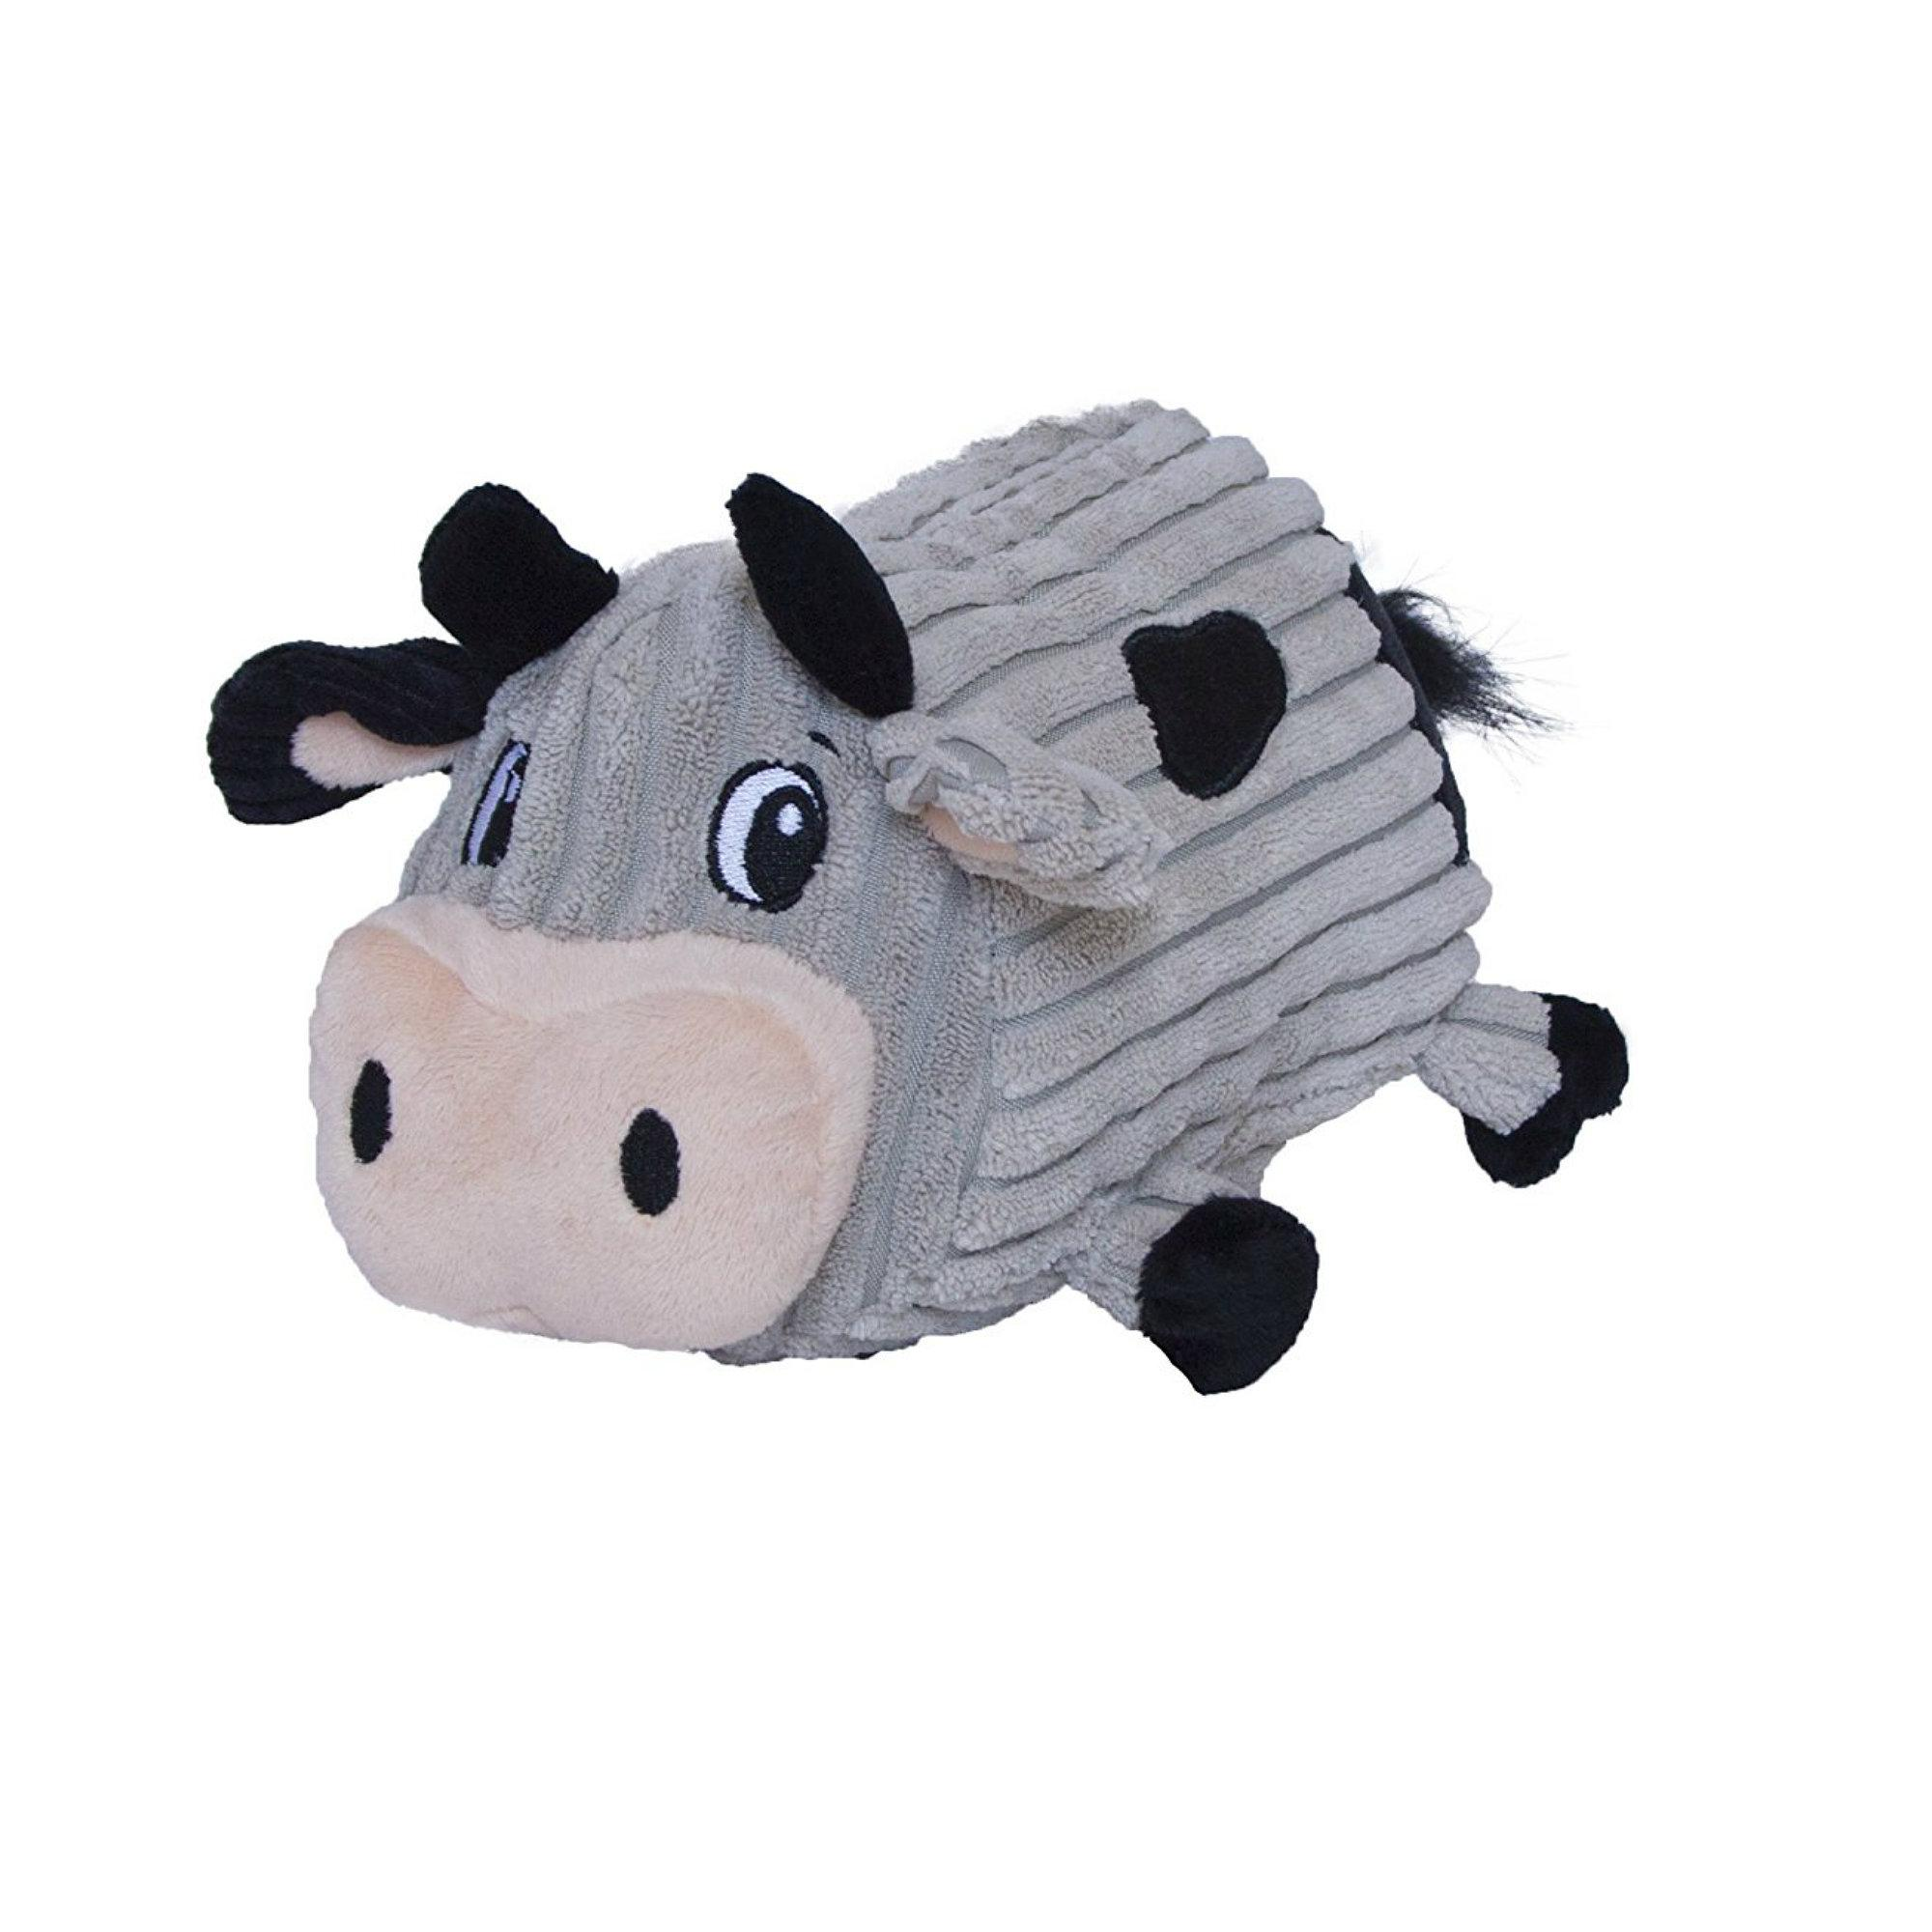 Outward Hound Fattiez Dog Toy - Cow